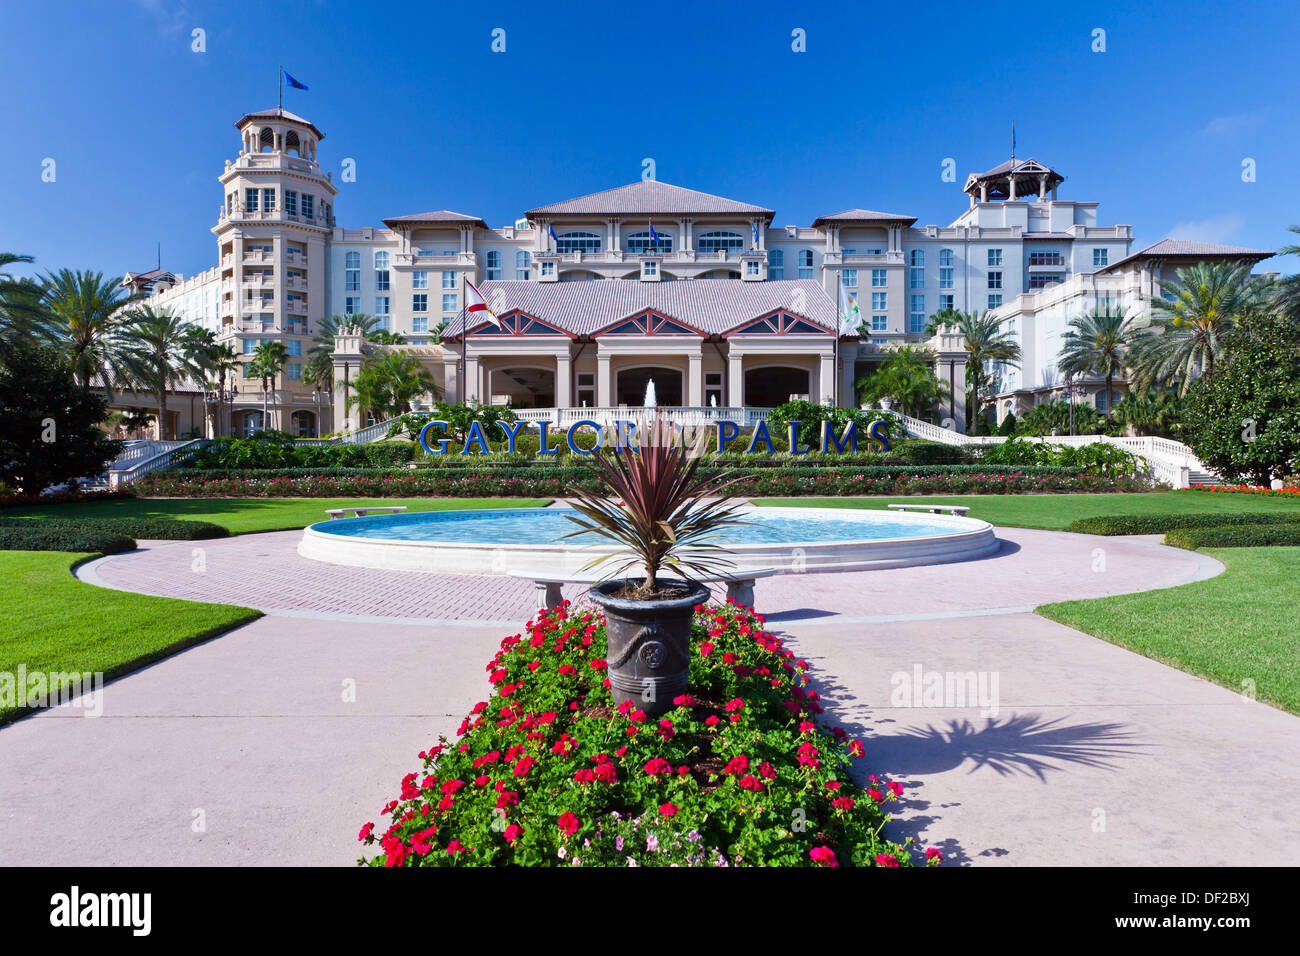 the gaylord palms resort hotel and convention center in orlando